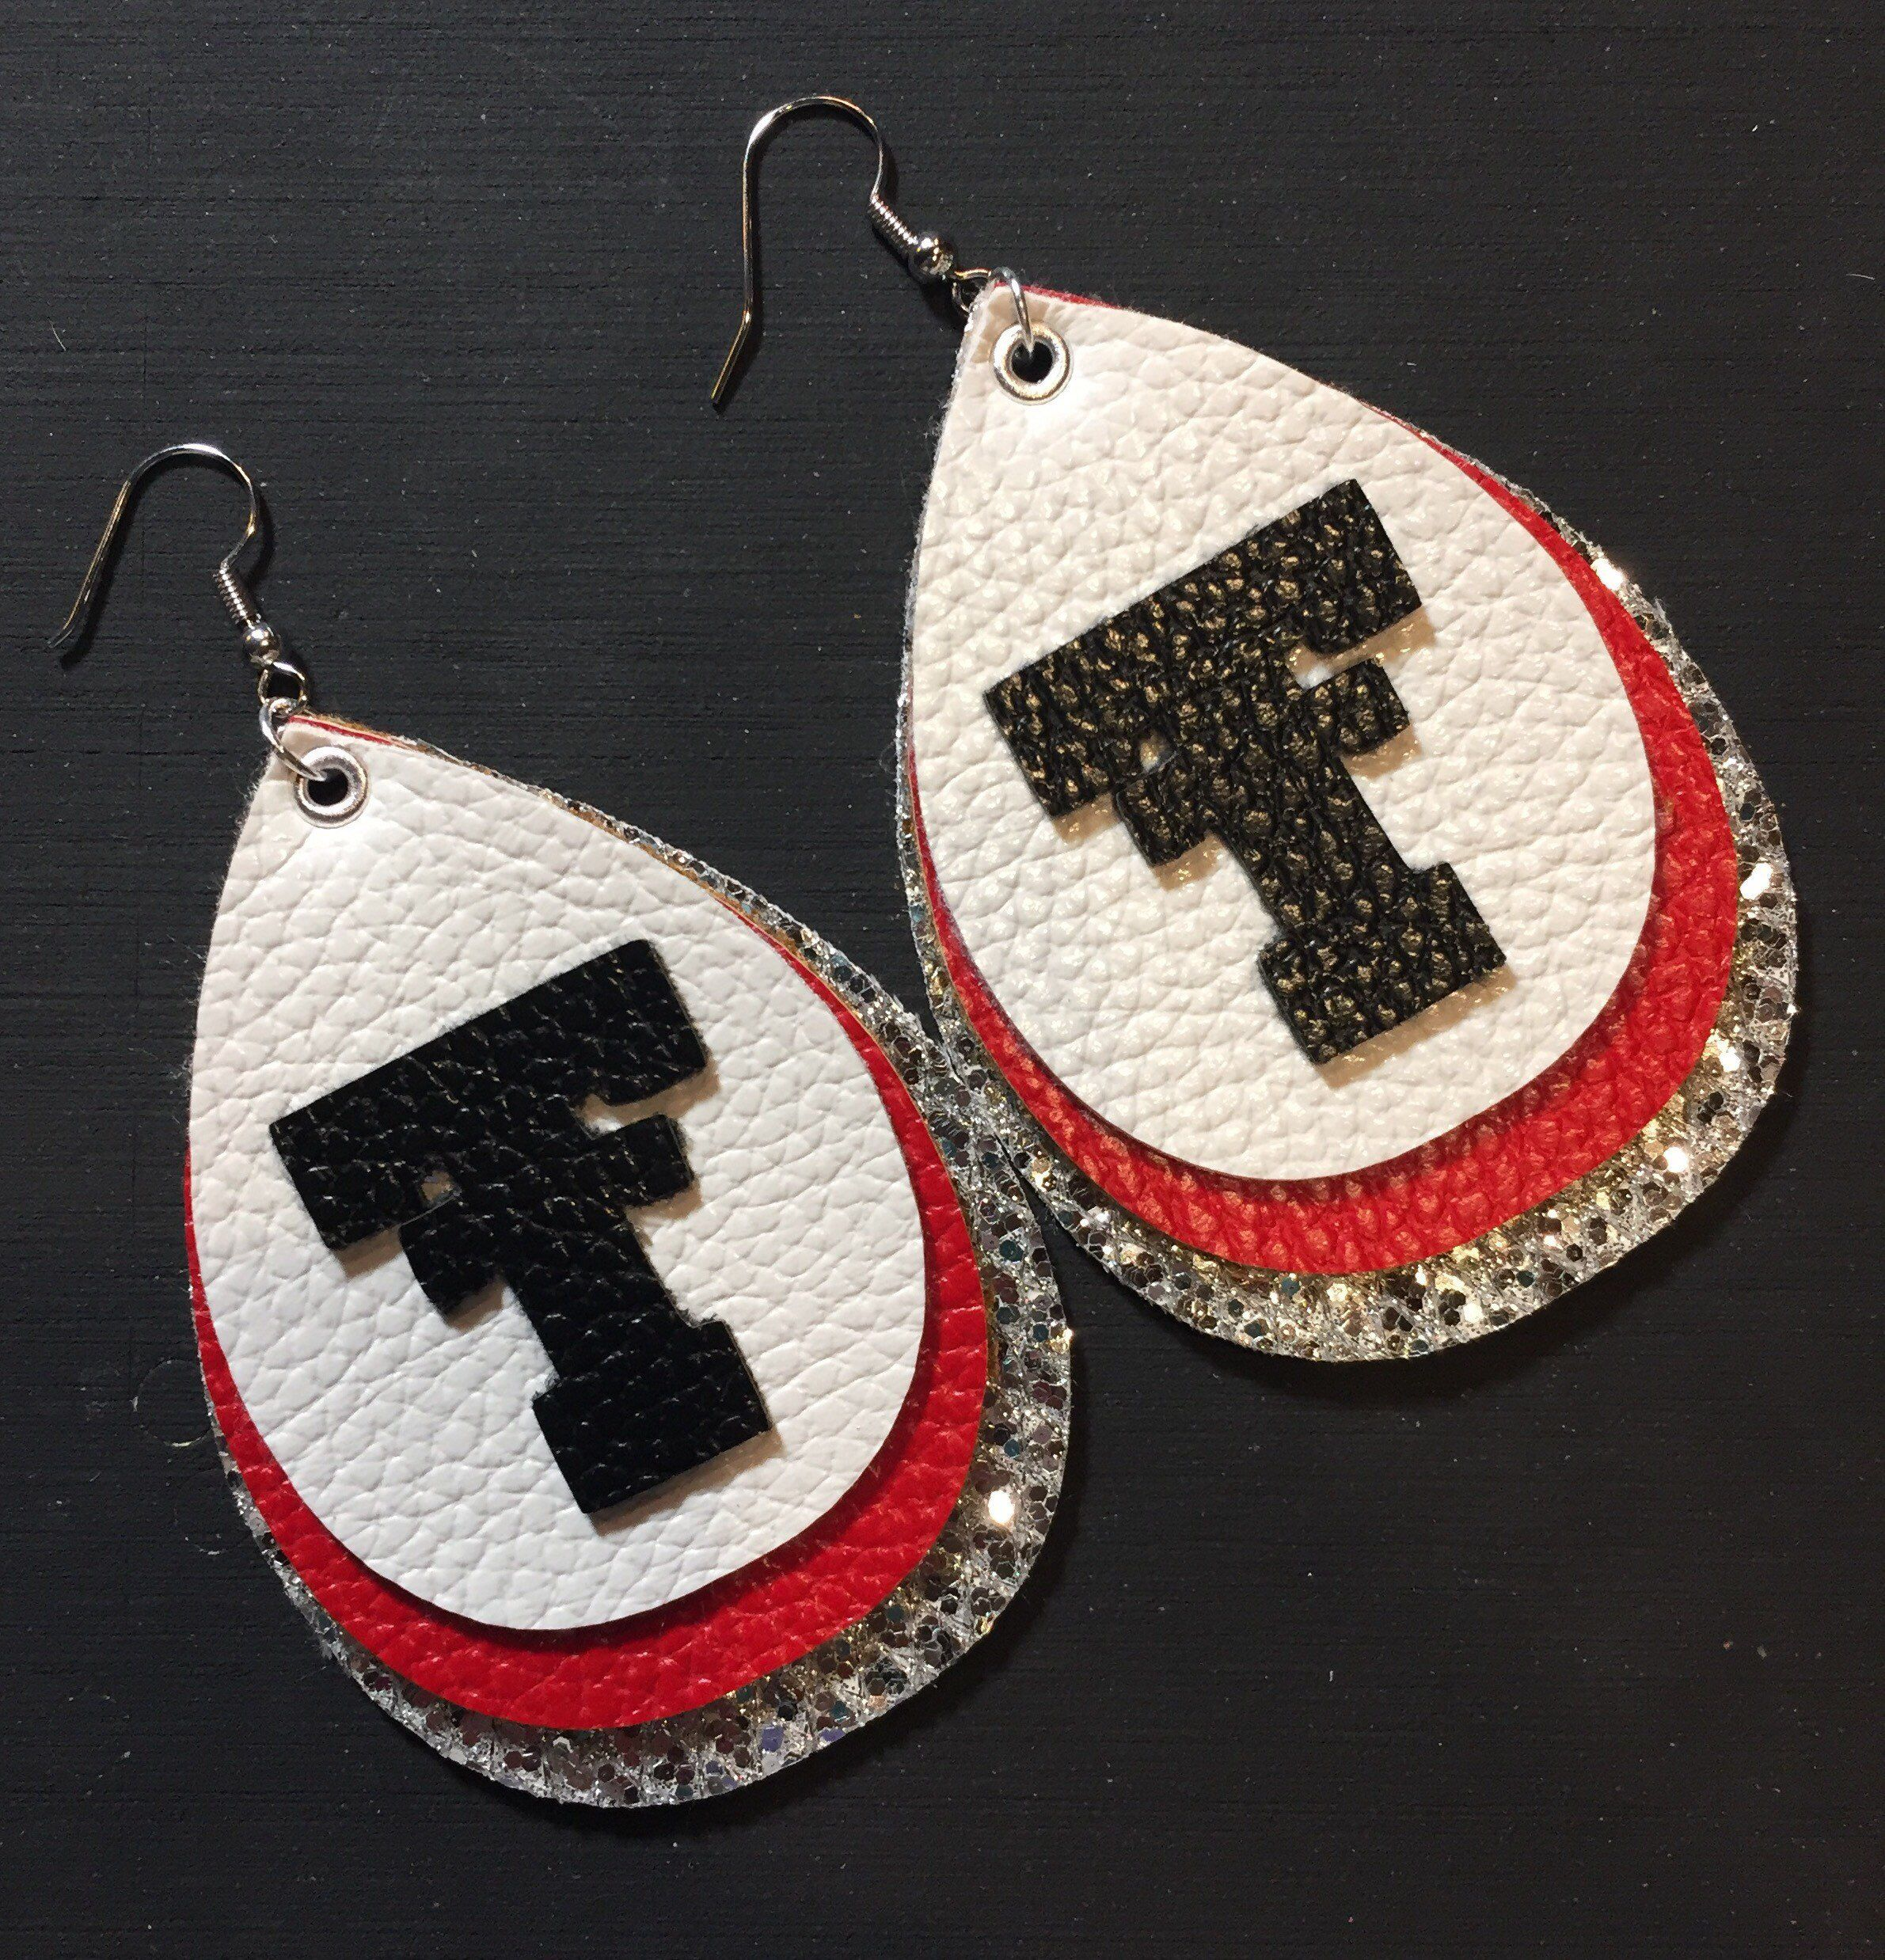 Texas Tech Jewelry Diamontrigue Jewelry: Excited To Share This Item From My #etsy Shop: Texas Tech